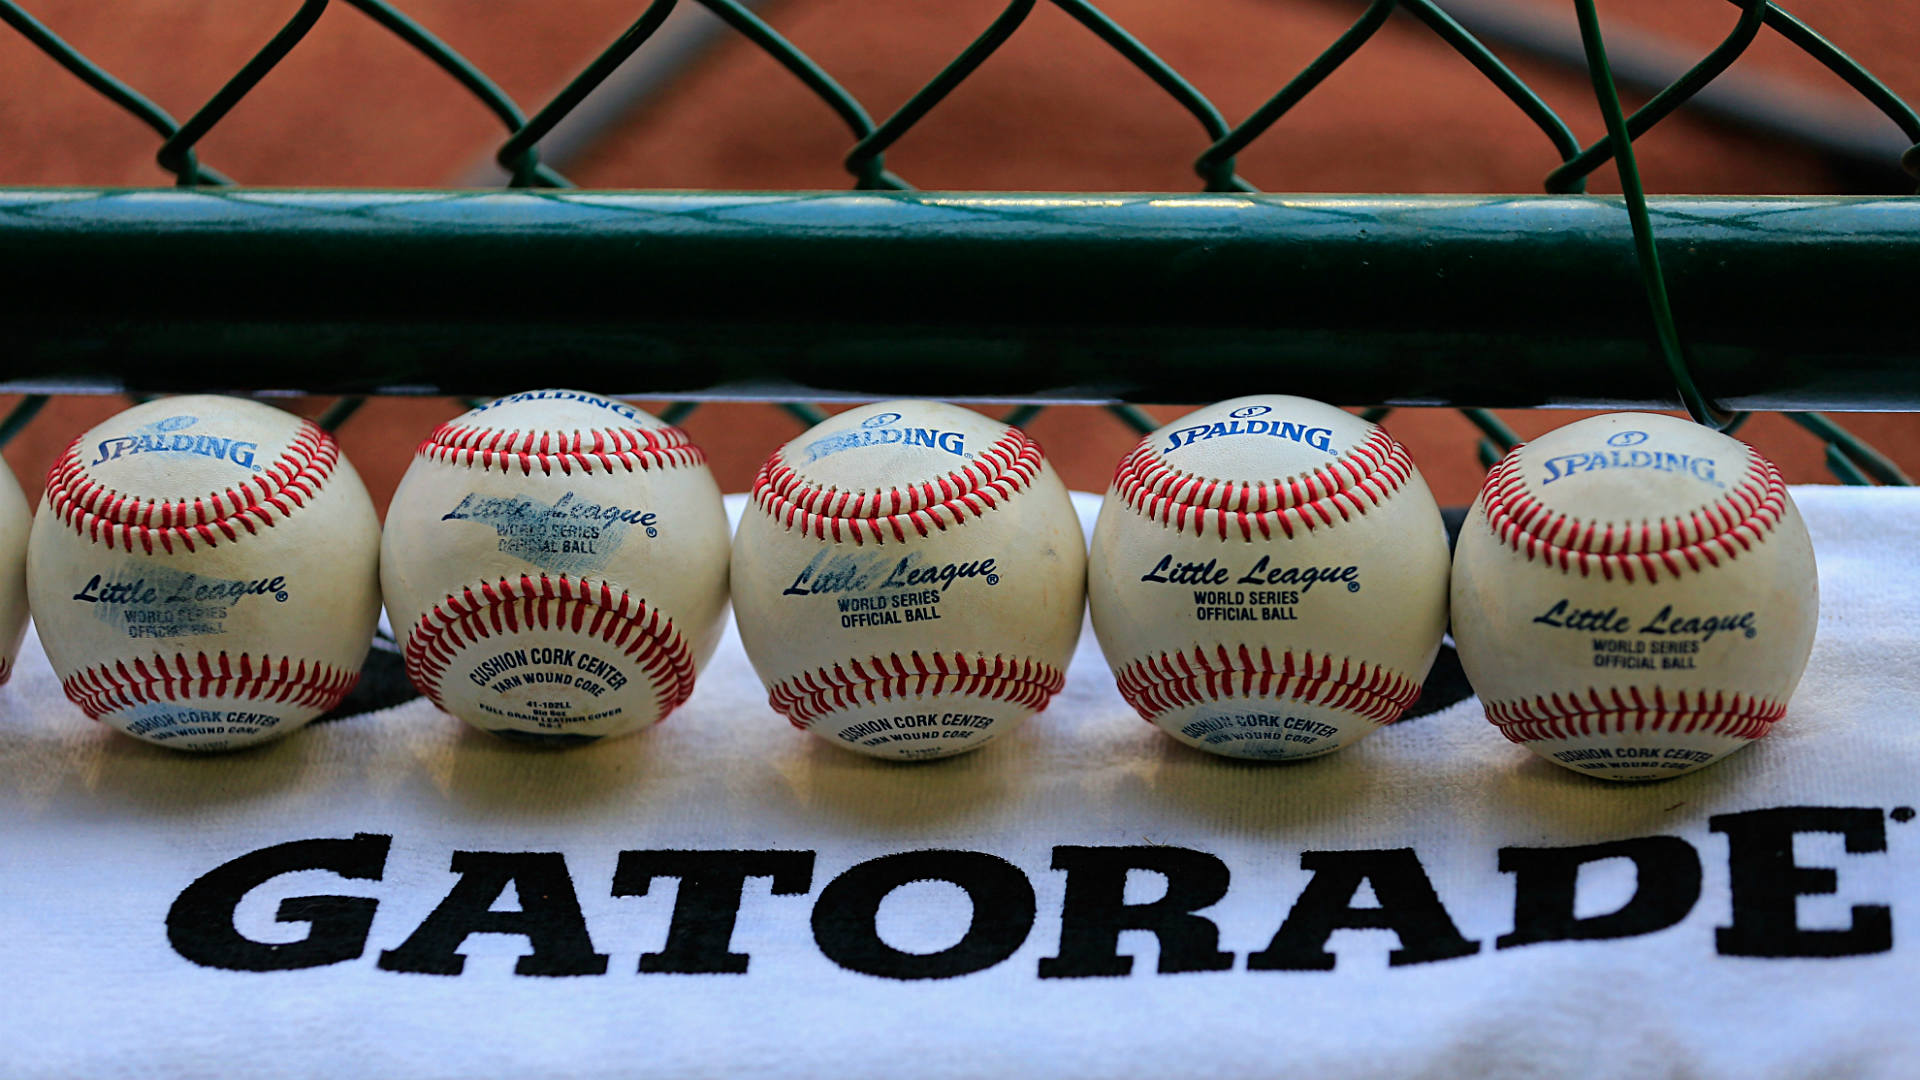 Little-League-World-Series-balls-FTR-Getty.jpg